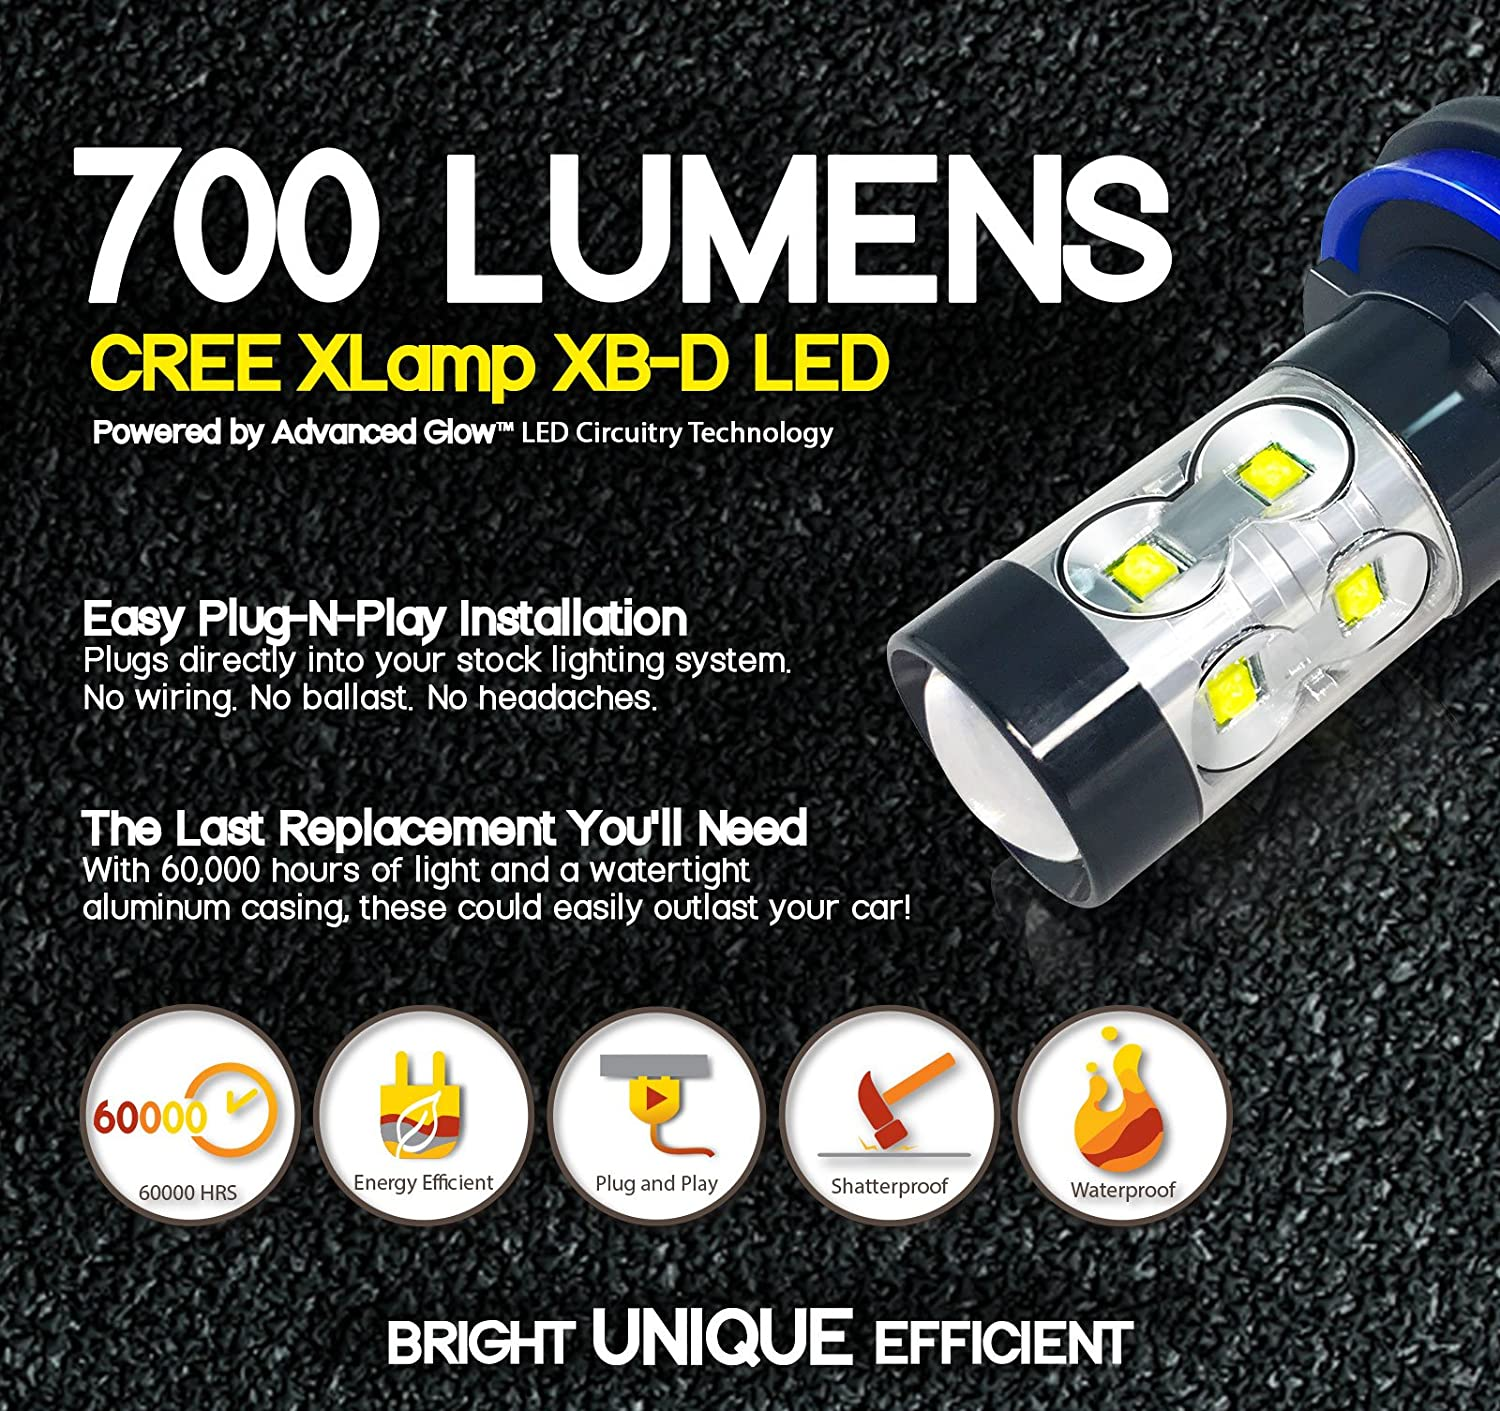 Opt7 H3 Cree Led Drl Fog Light Bulbs All Bulb Sizes Series Circuits 1 In Which Circuit The Will Lit Up Brighter 2 And Colors 5000k Bright White 700 Lm Per Plug N Play Pack Of Automotive